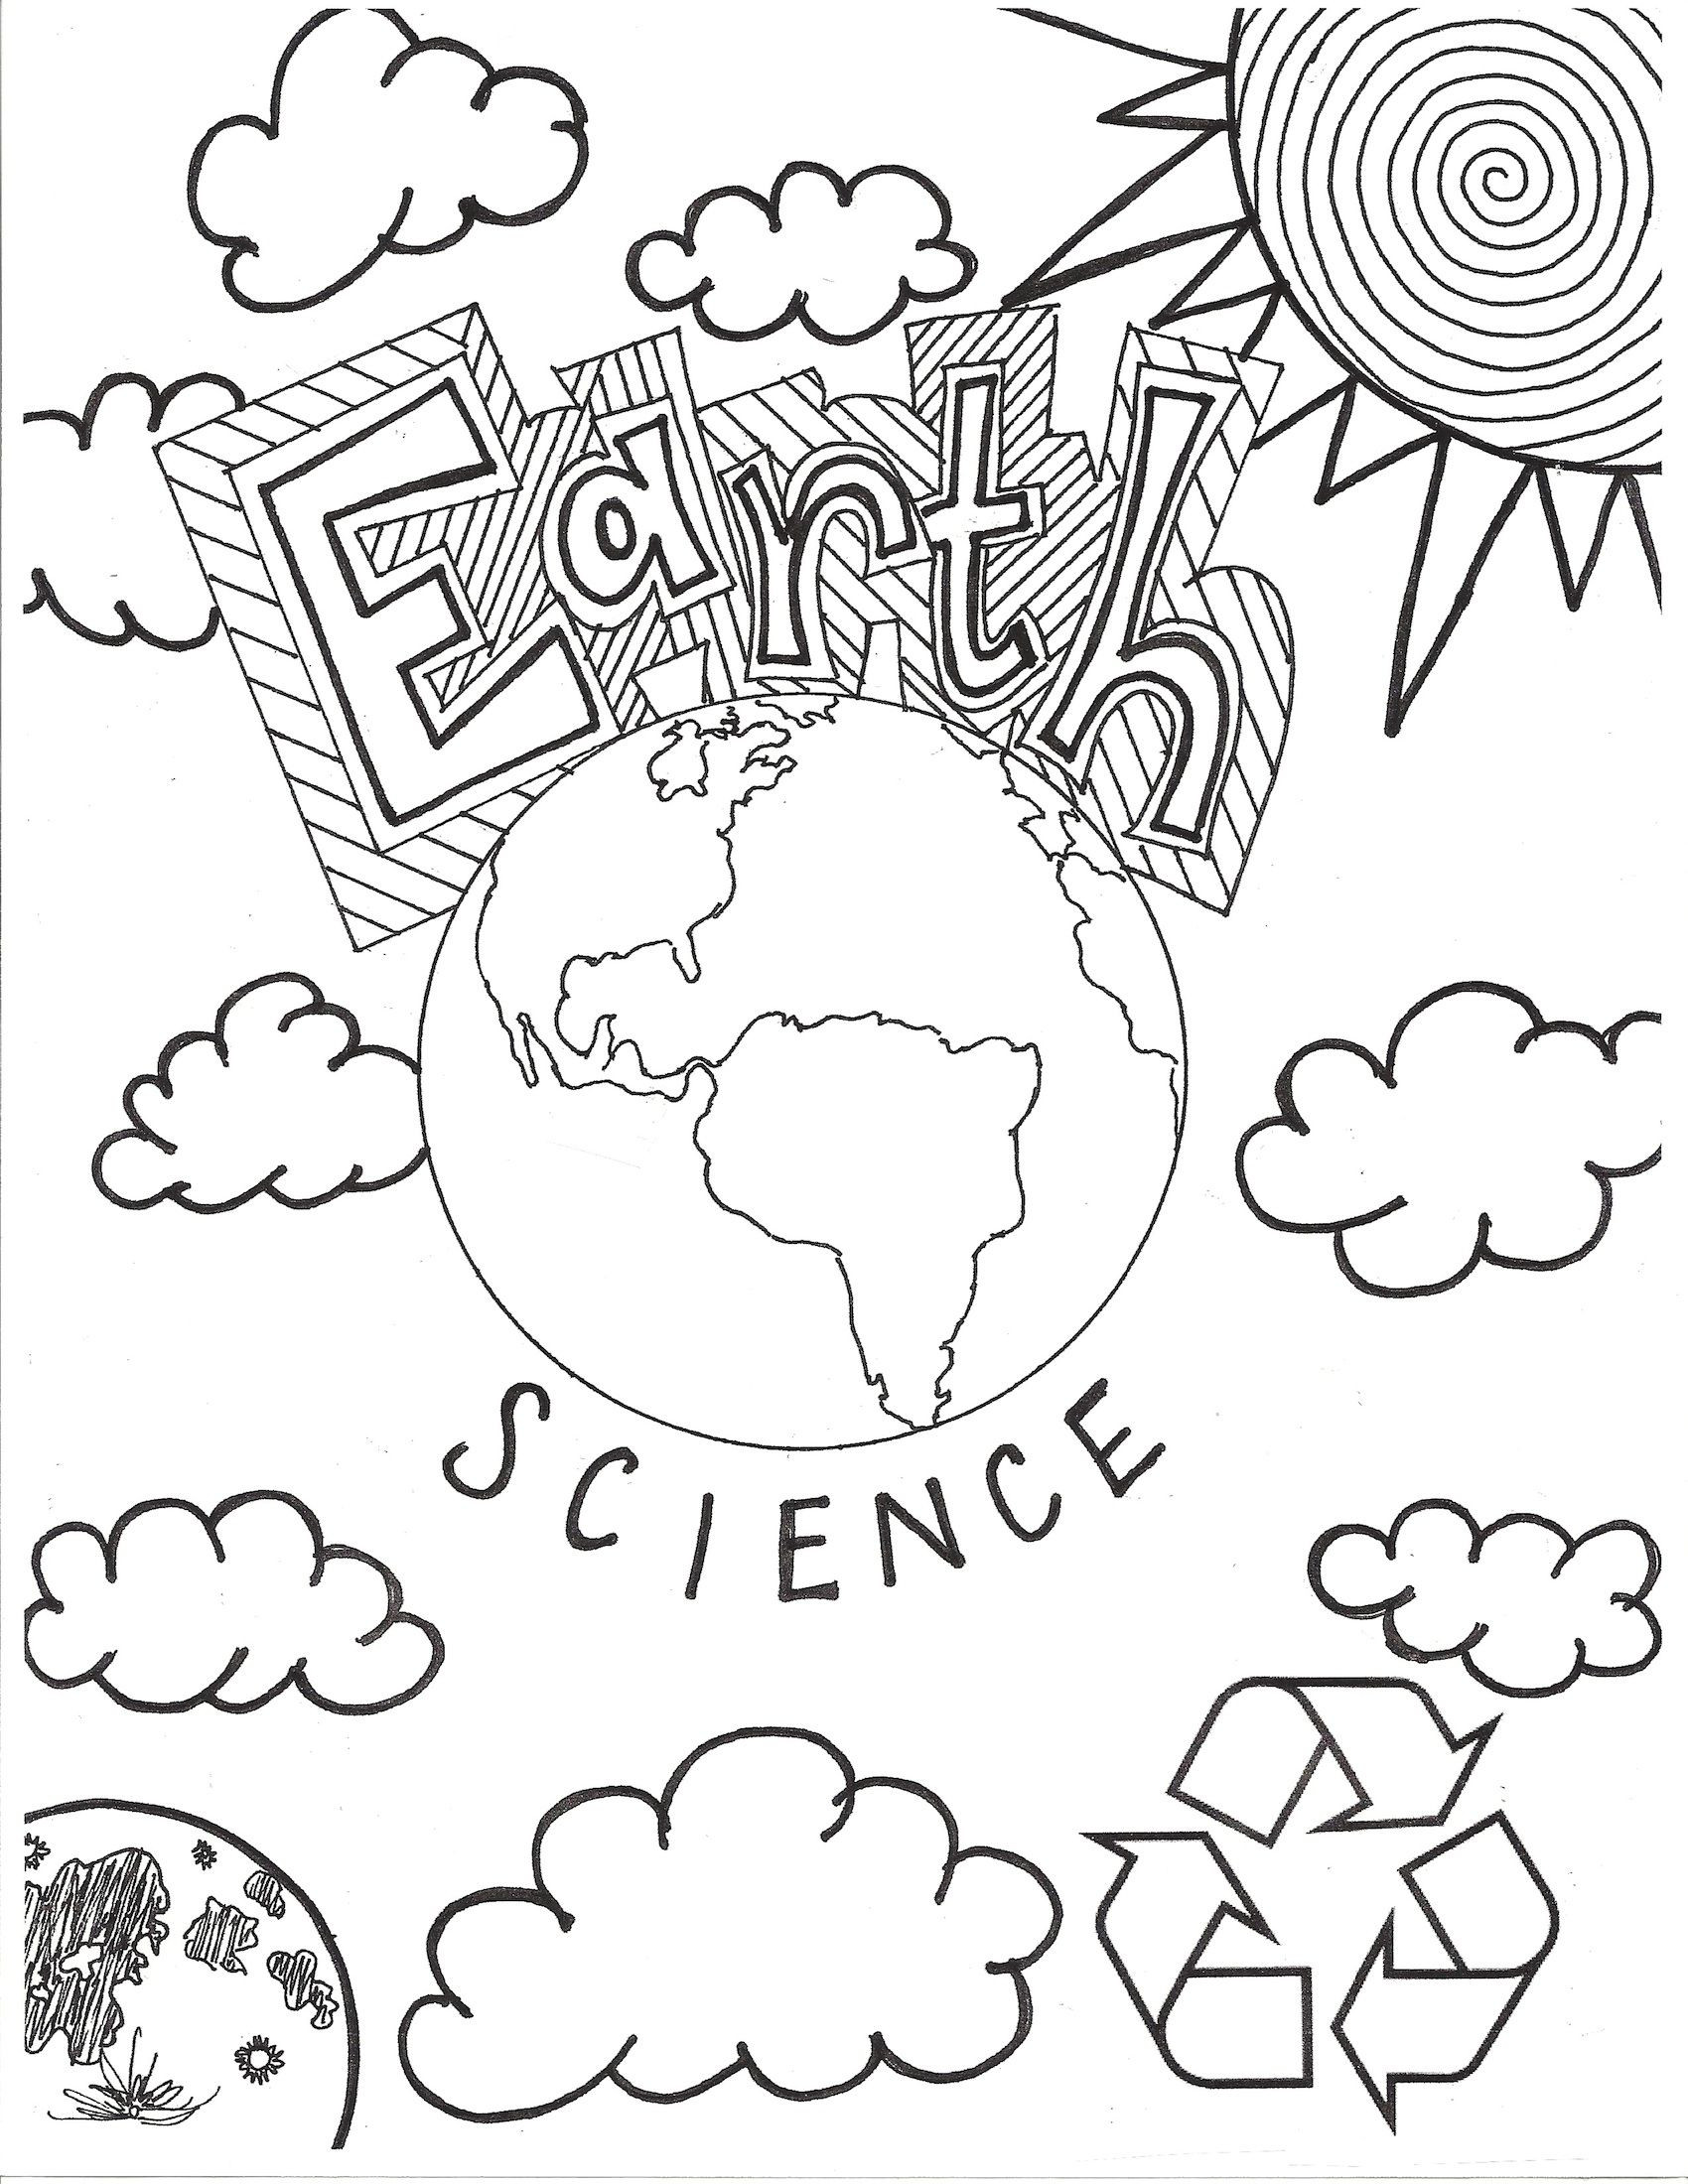 Recycling Worksheets for Middle School Earth Science Coloring Cover Middle School Free Recycling